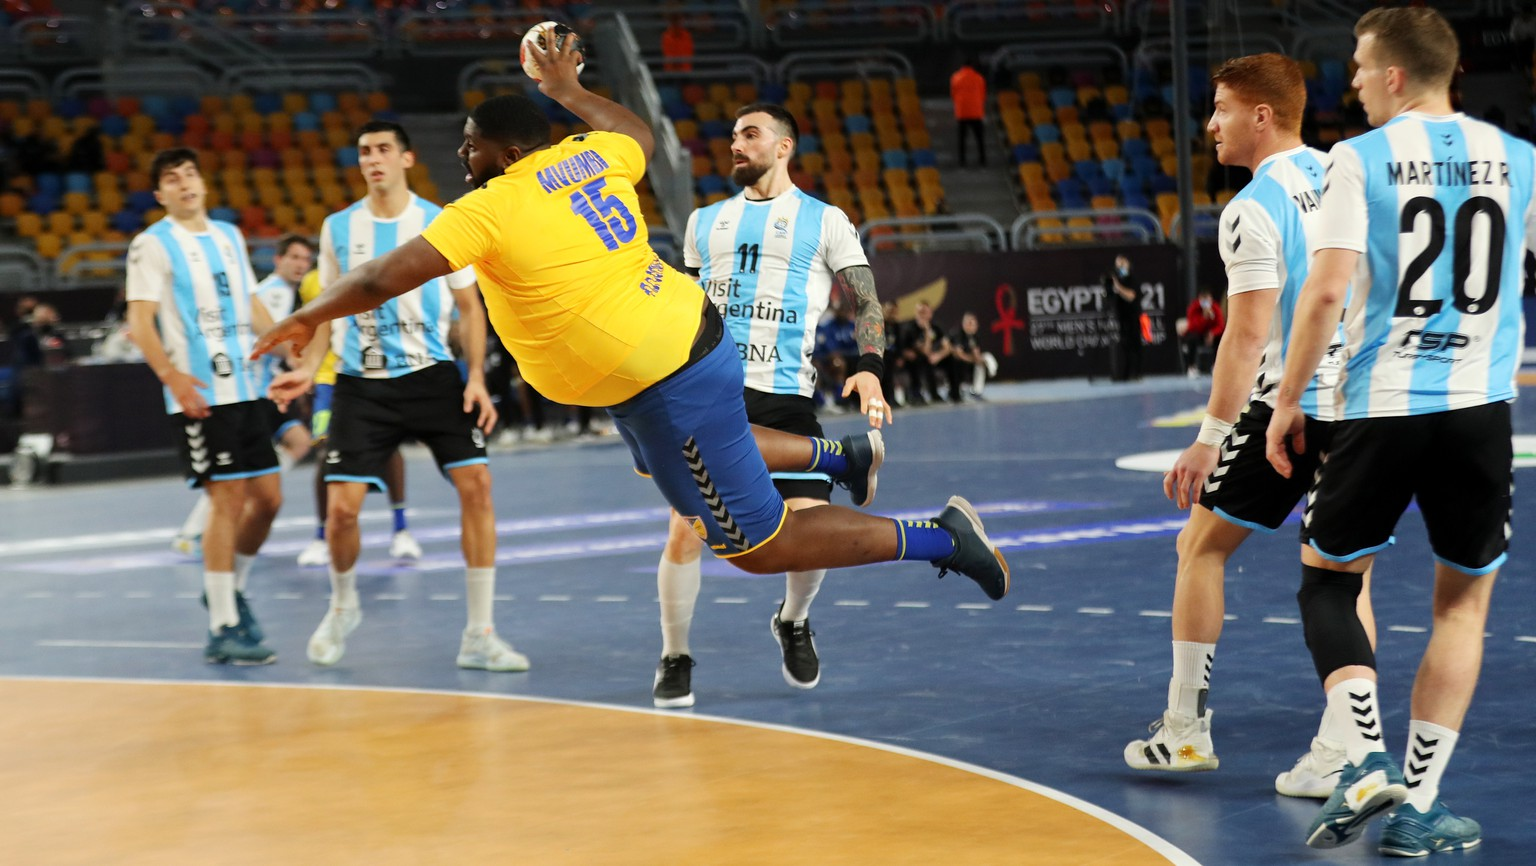 epa08939665 Gauthier Mvumbi Thierry (C) of Congo attempts to score during the match between Argentina and D.R. Congo at the 27th Men's Handball World Championship in Cairo, Egypt, 15 January 2021.  EPA/Mohamed Abd El Ghany / POOL